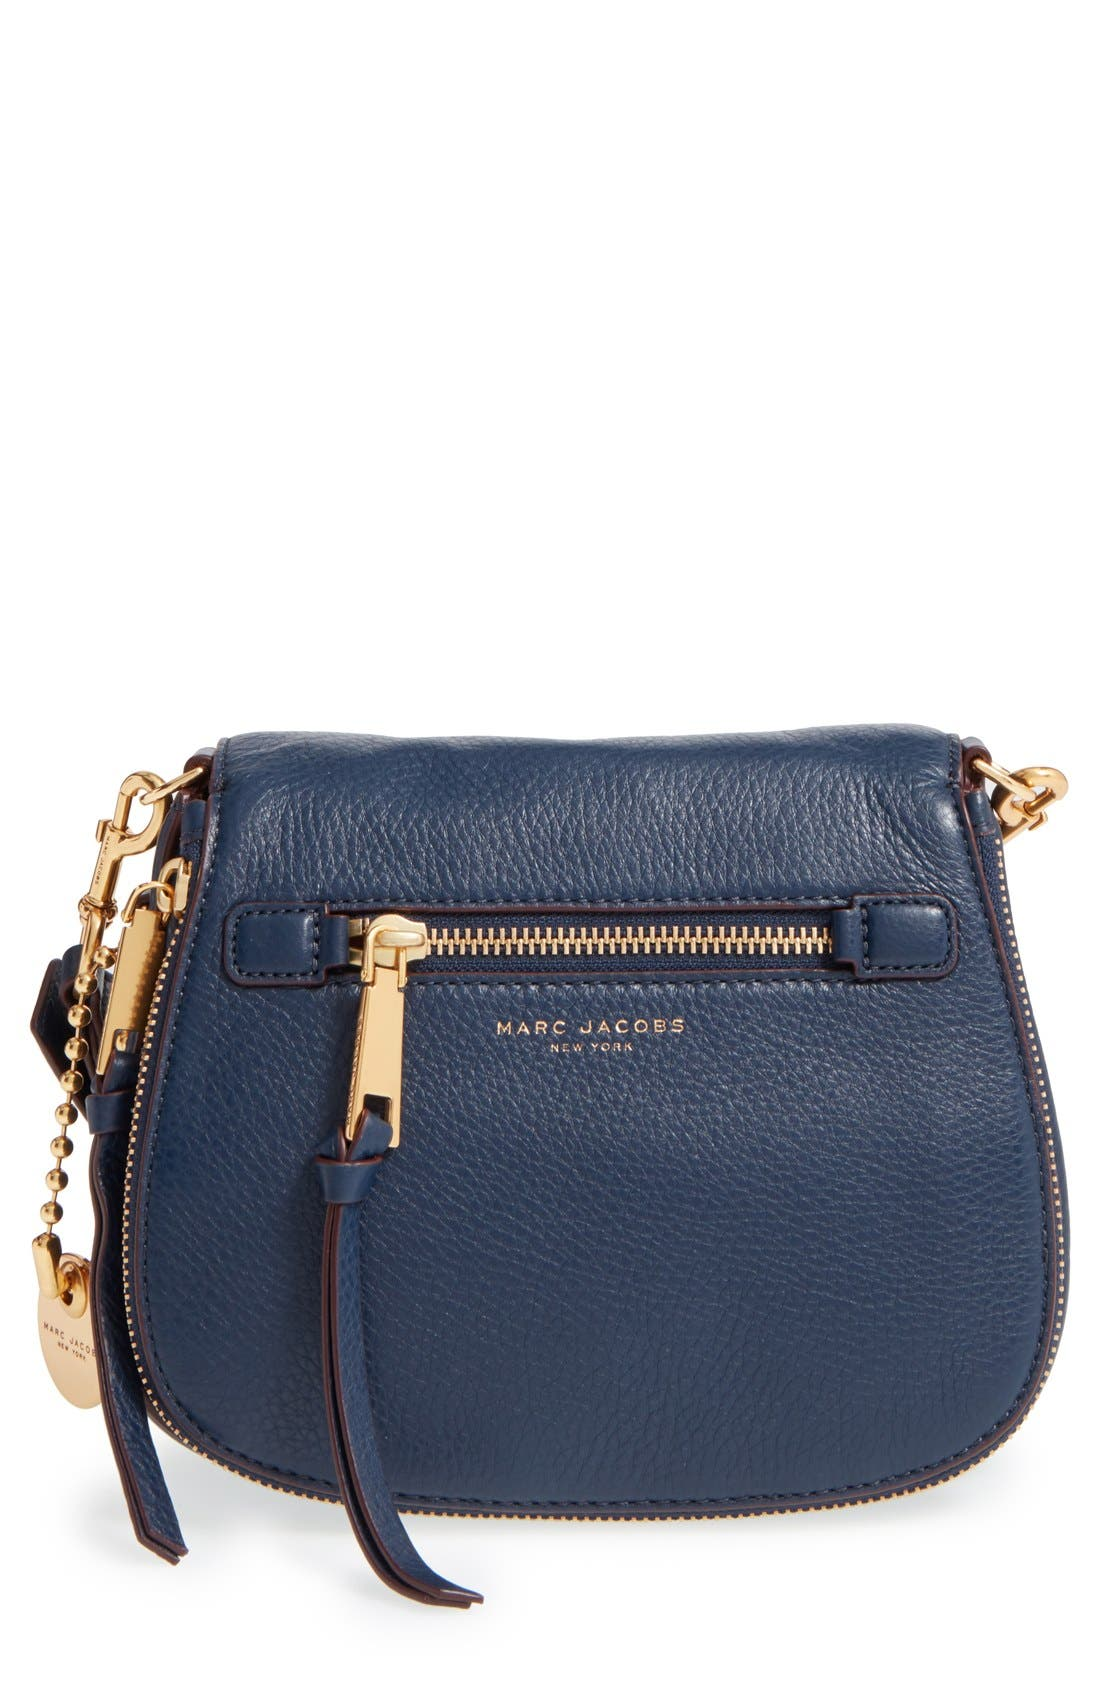 Small Recruit Nomad Pebbled Leather Crossbody Bag,                             Main thumbnail 7, color,